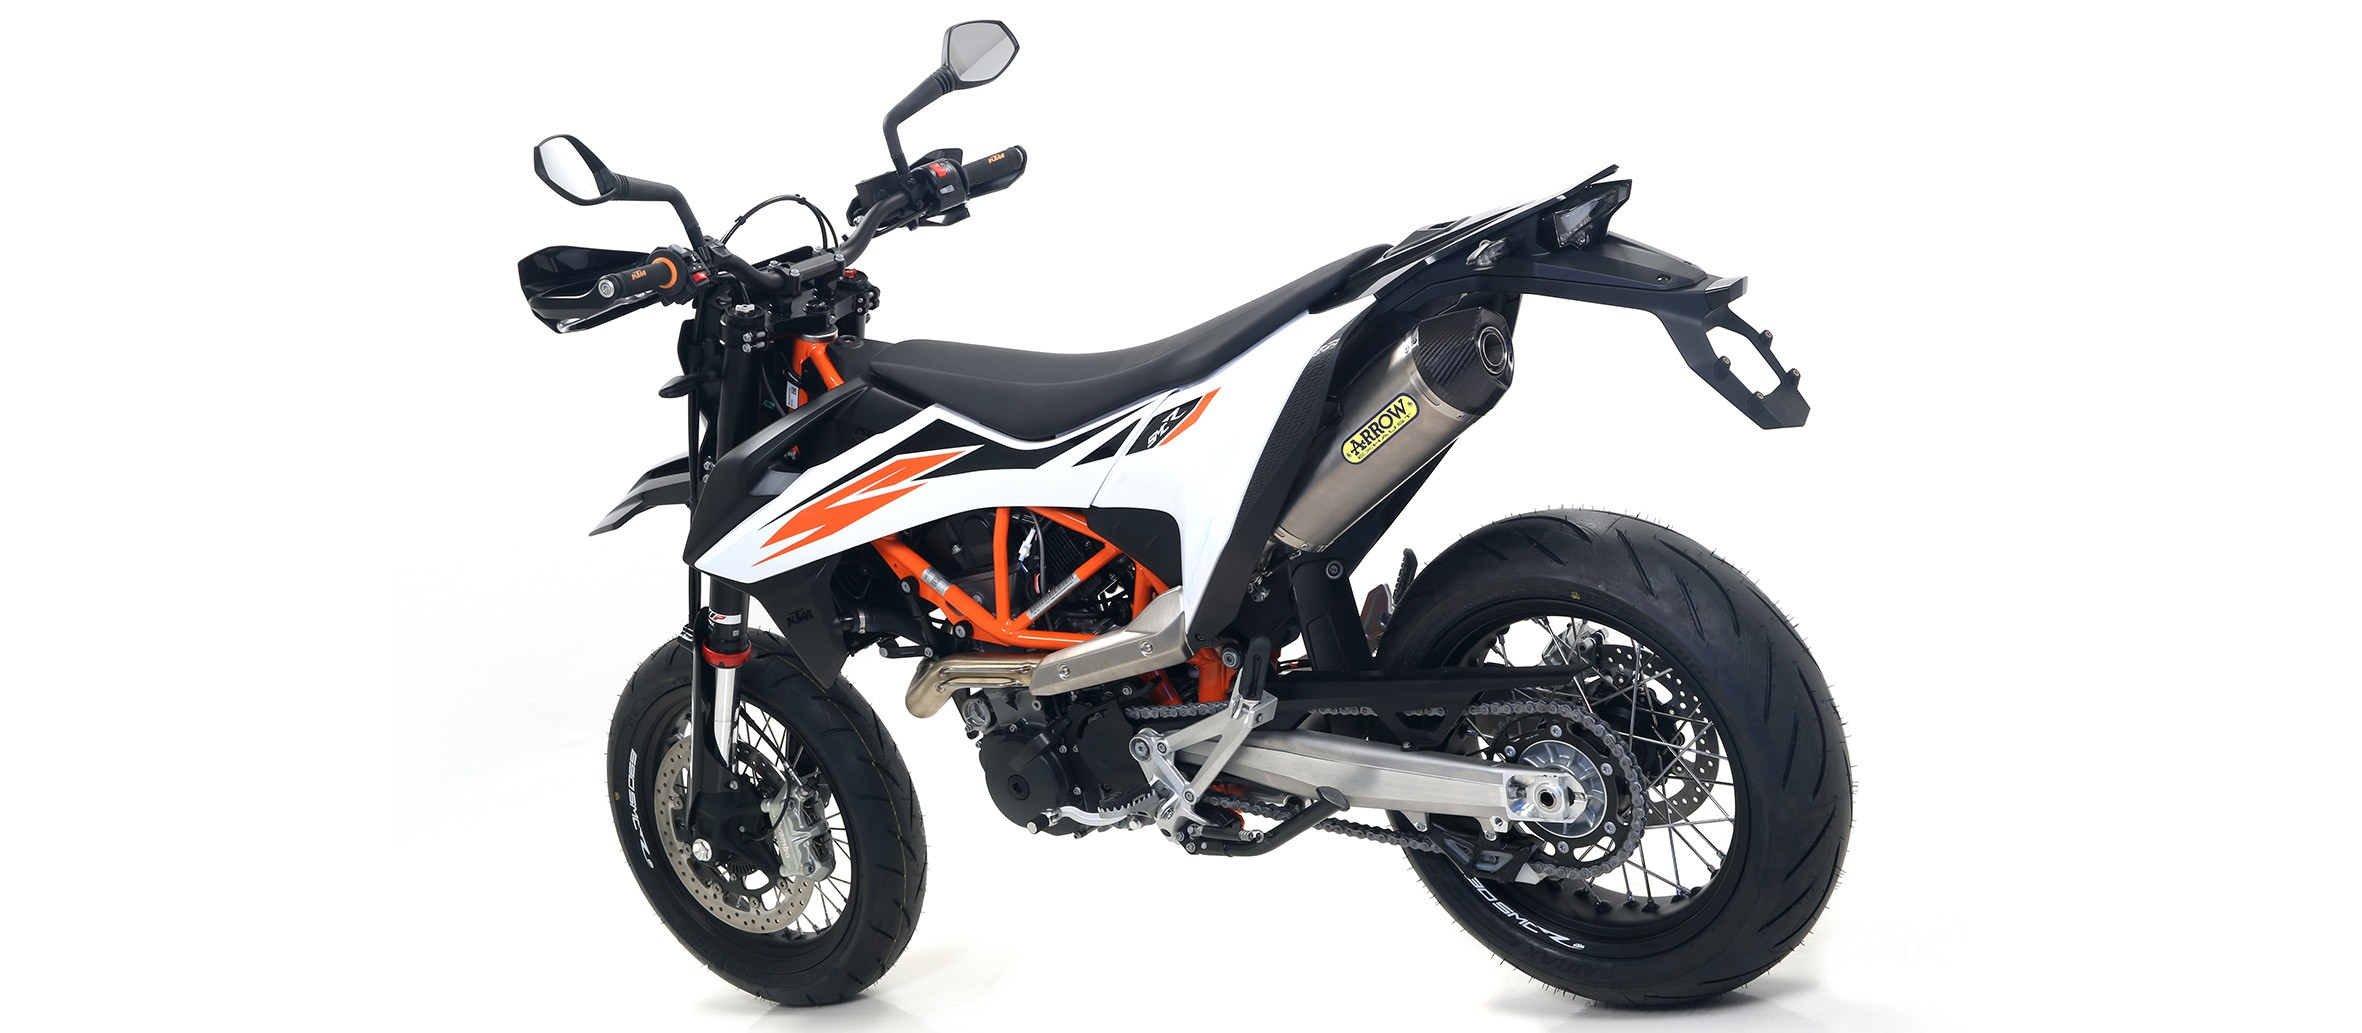 Arrow Racing Full Exhaust System, Titanium / Stainless - 2019+ KTM 690 SMC R